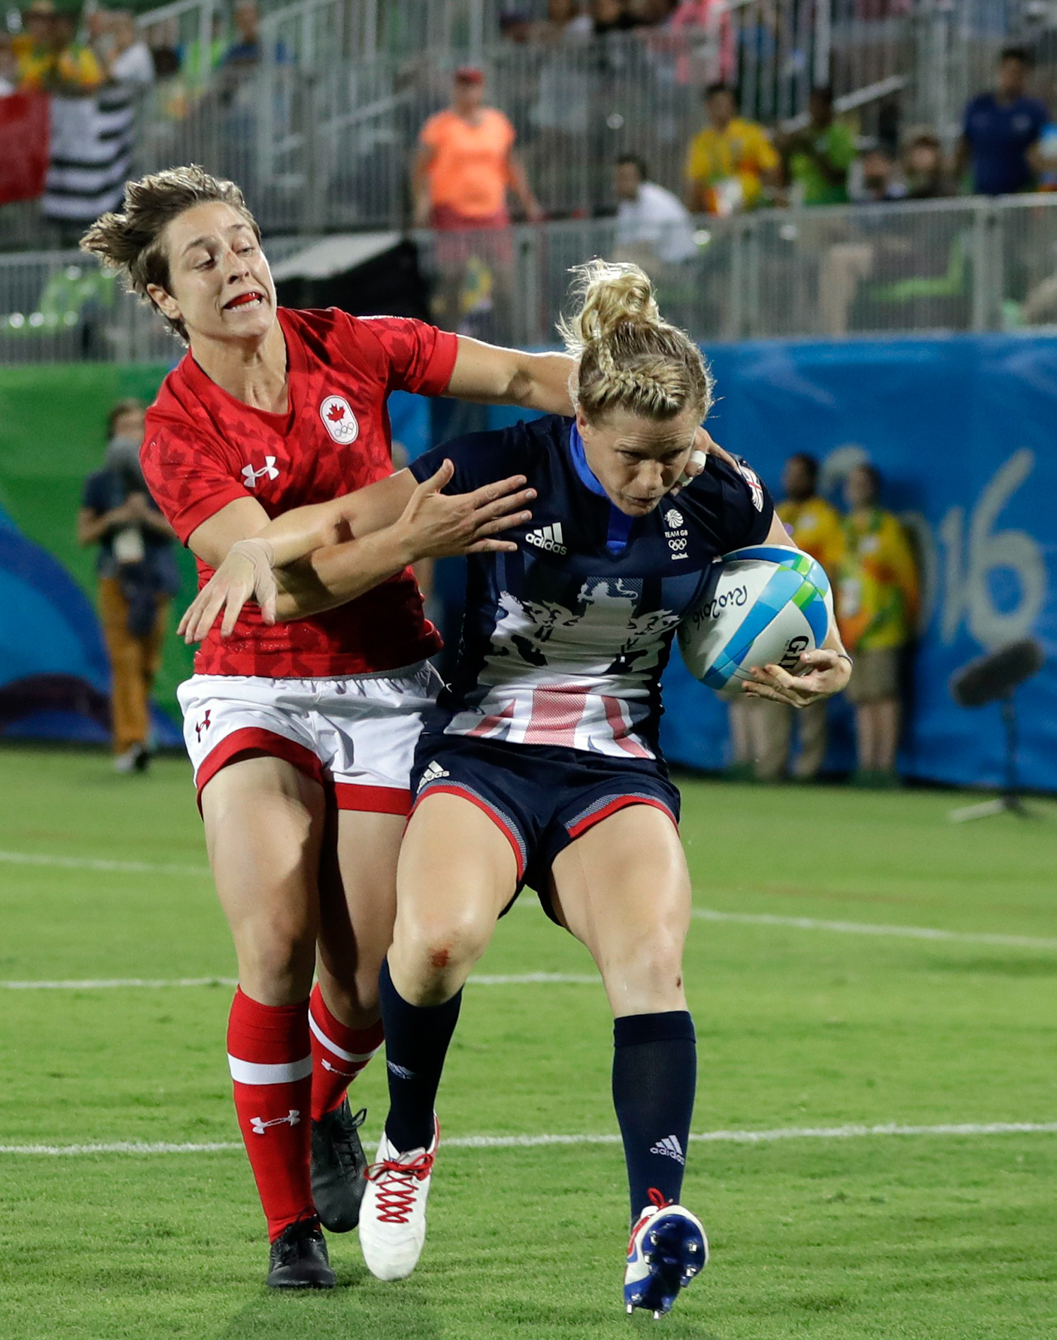 Great Britain's Danielle Waterman, right, avoids a tackle from Canada's Ghislaine Landry, to score a try during the women's rugby sevens bronze medal match at the Summer Olympics in Rio de Janeiro, Brazil, Monday, Aug. 8, 2016. (AP Photo/Themba Hadebe)